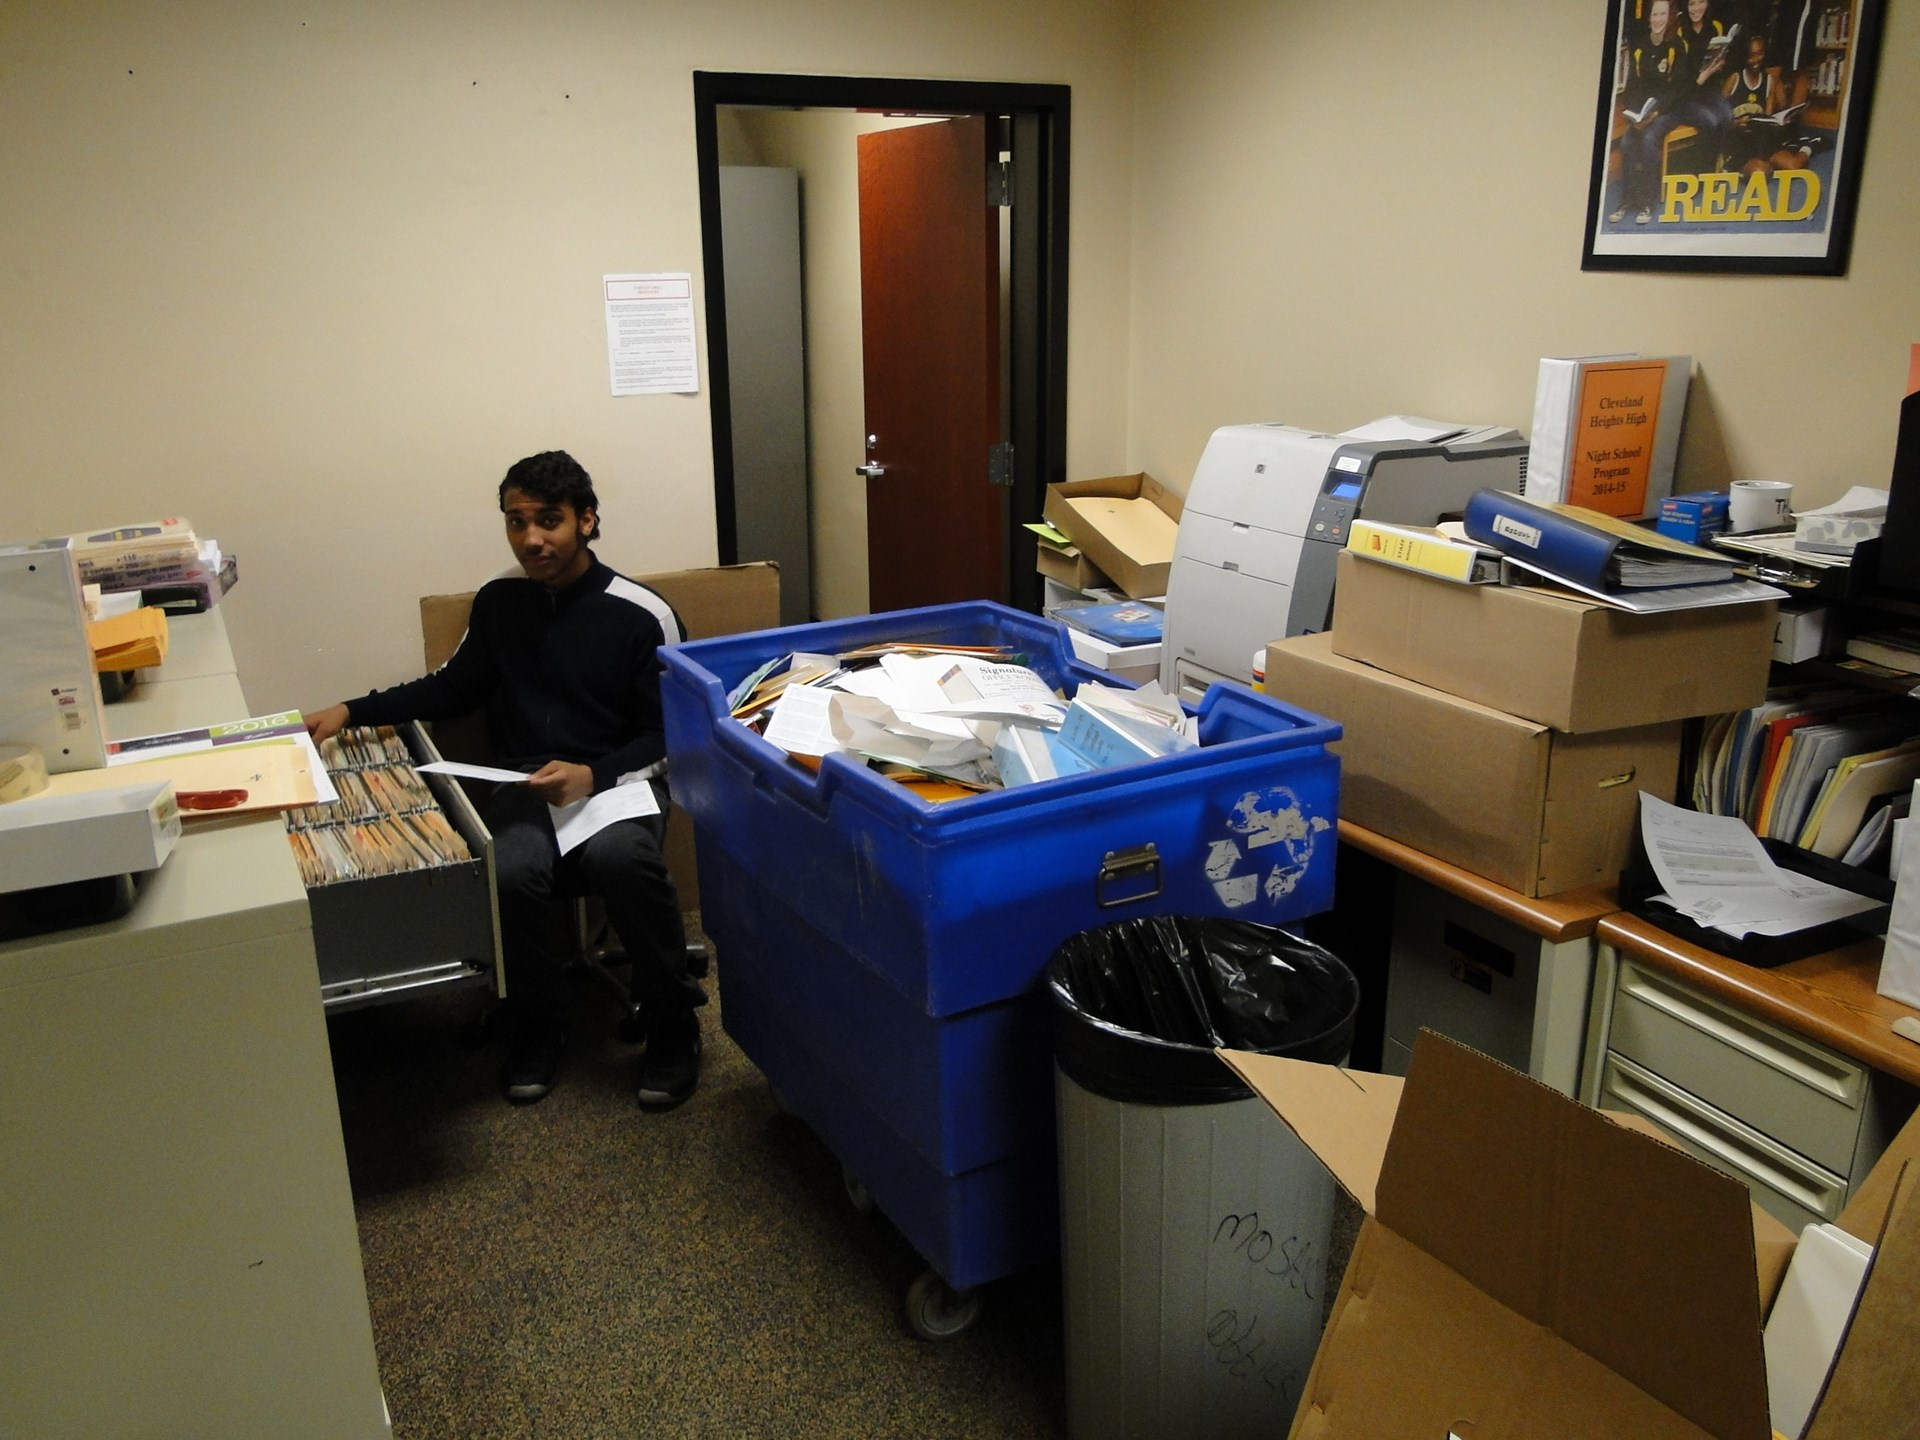 Student volunteer helps recycle outdated files.